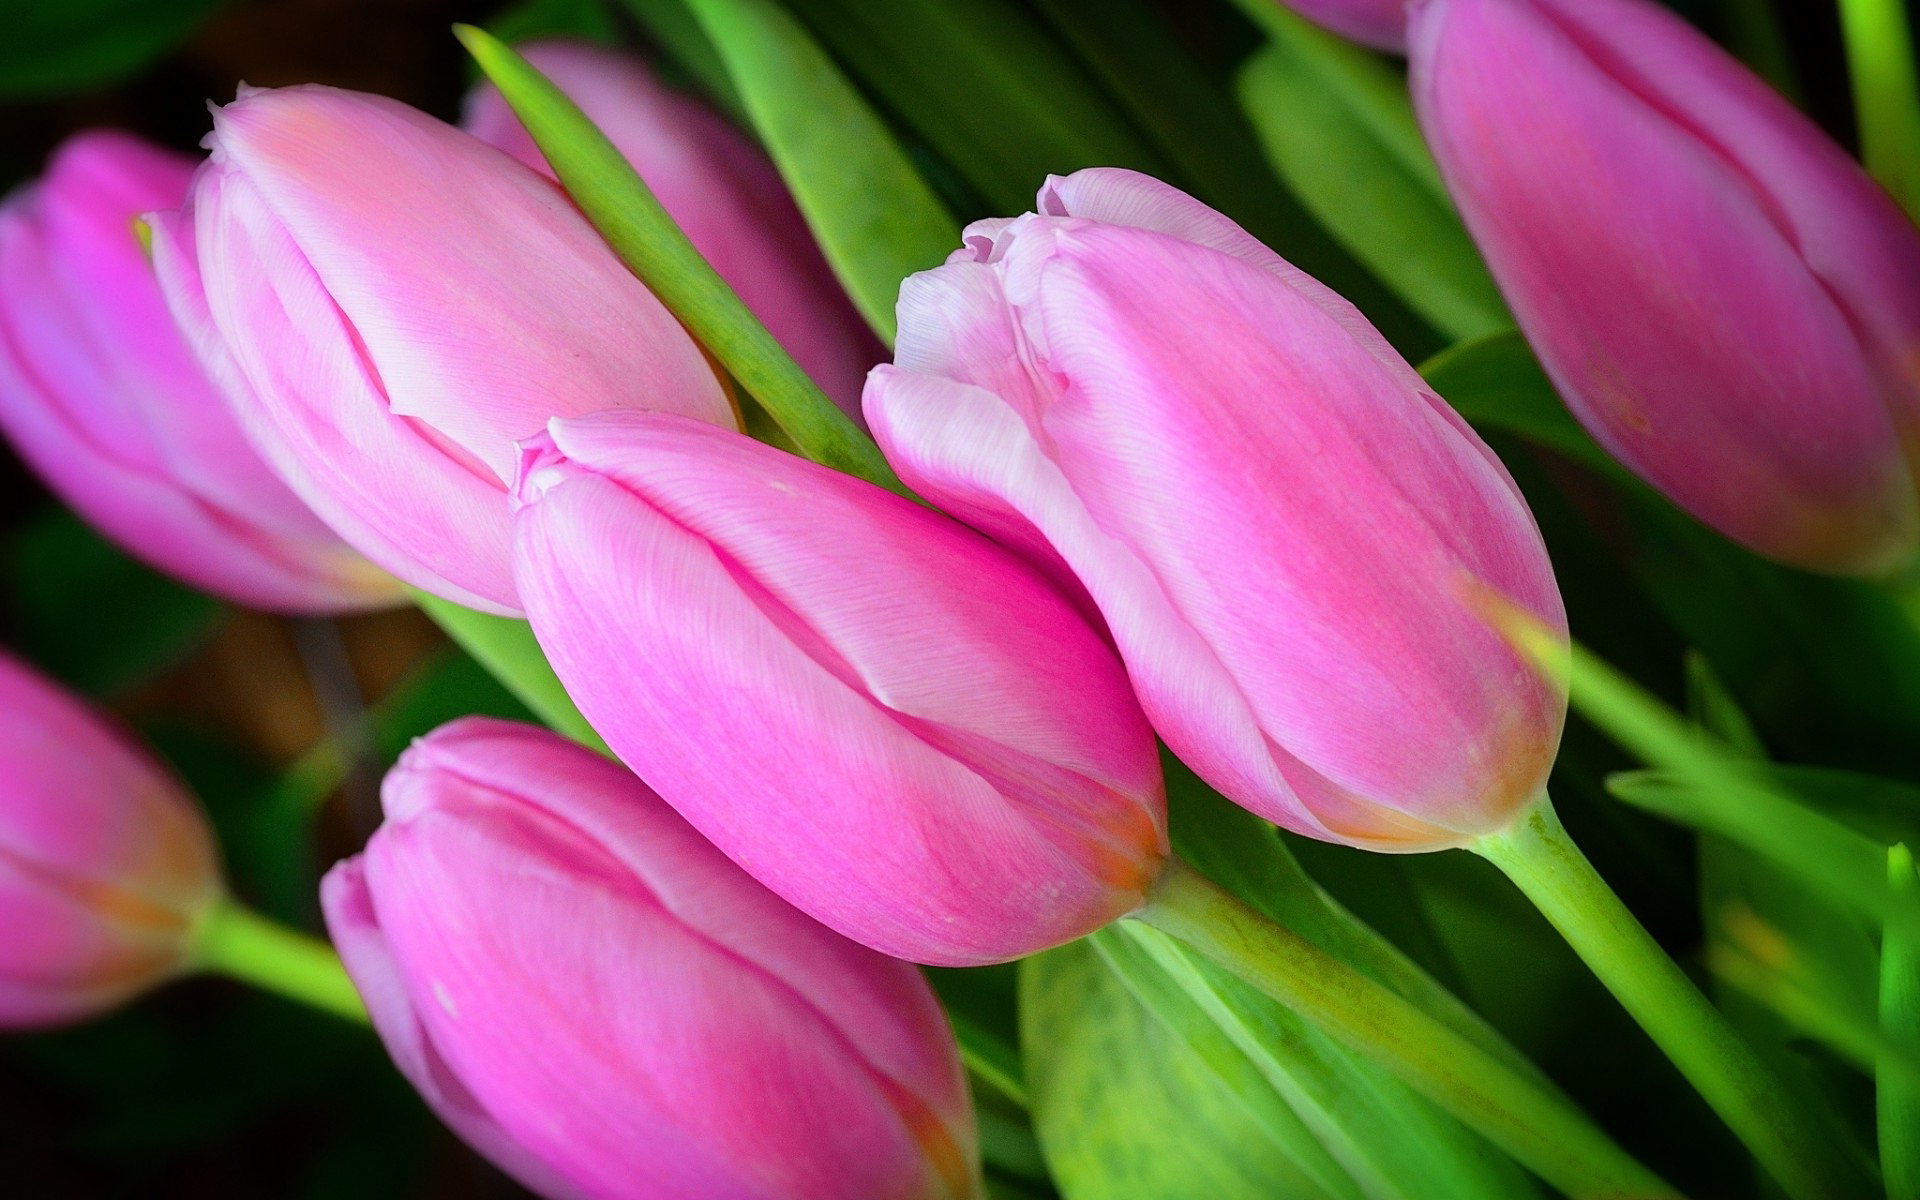 Pink tulip flowers hd desktop wallpapers 4k hd - Flowers native to greece a sea of color ...